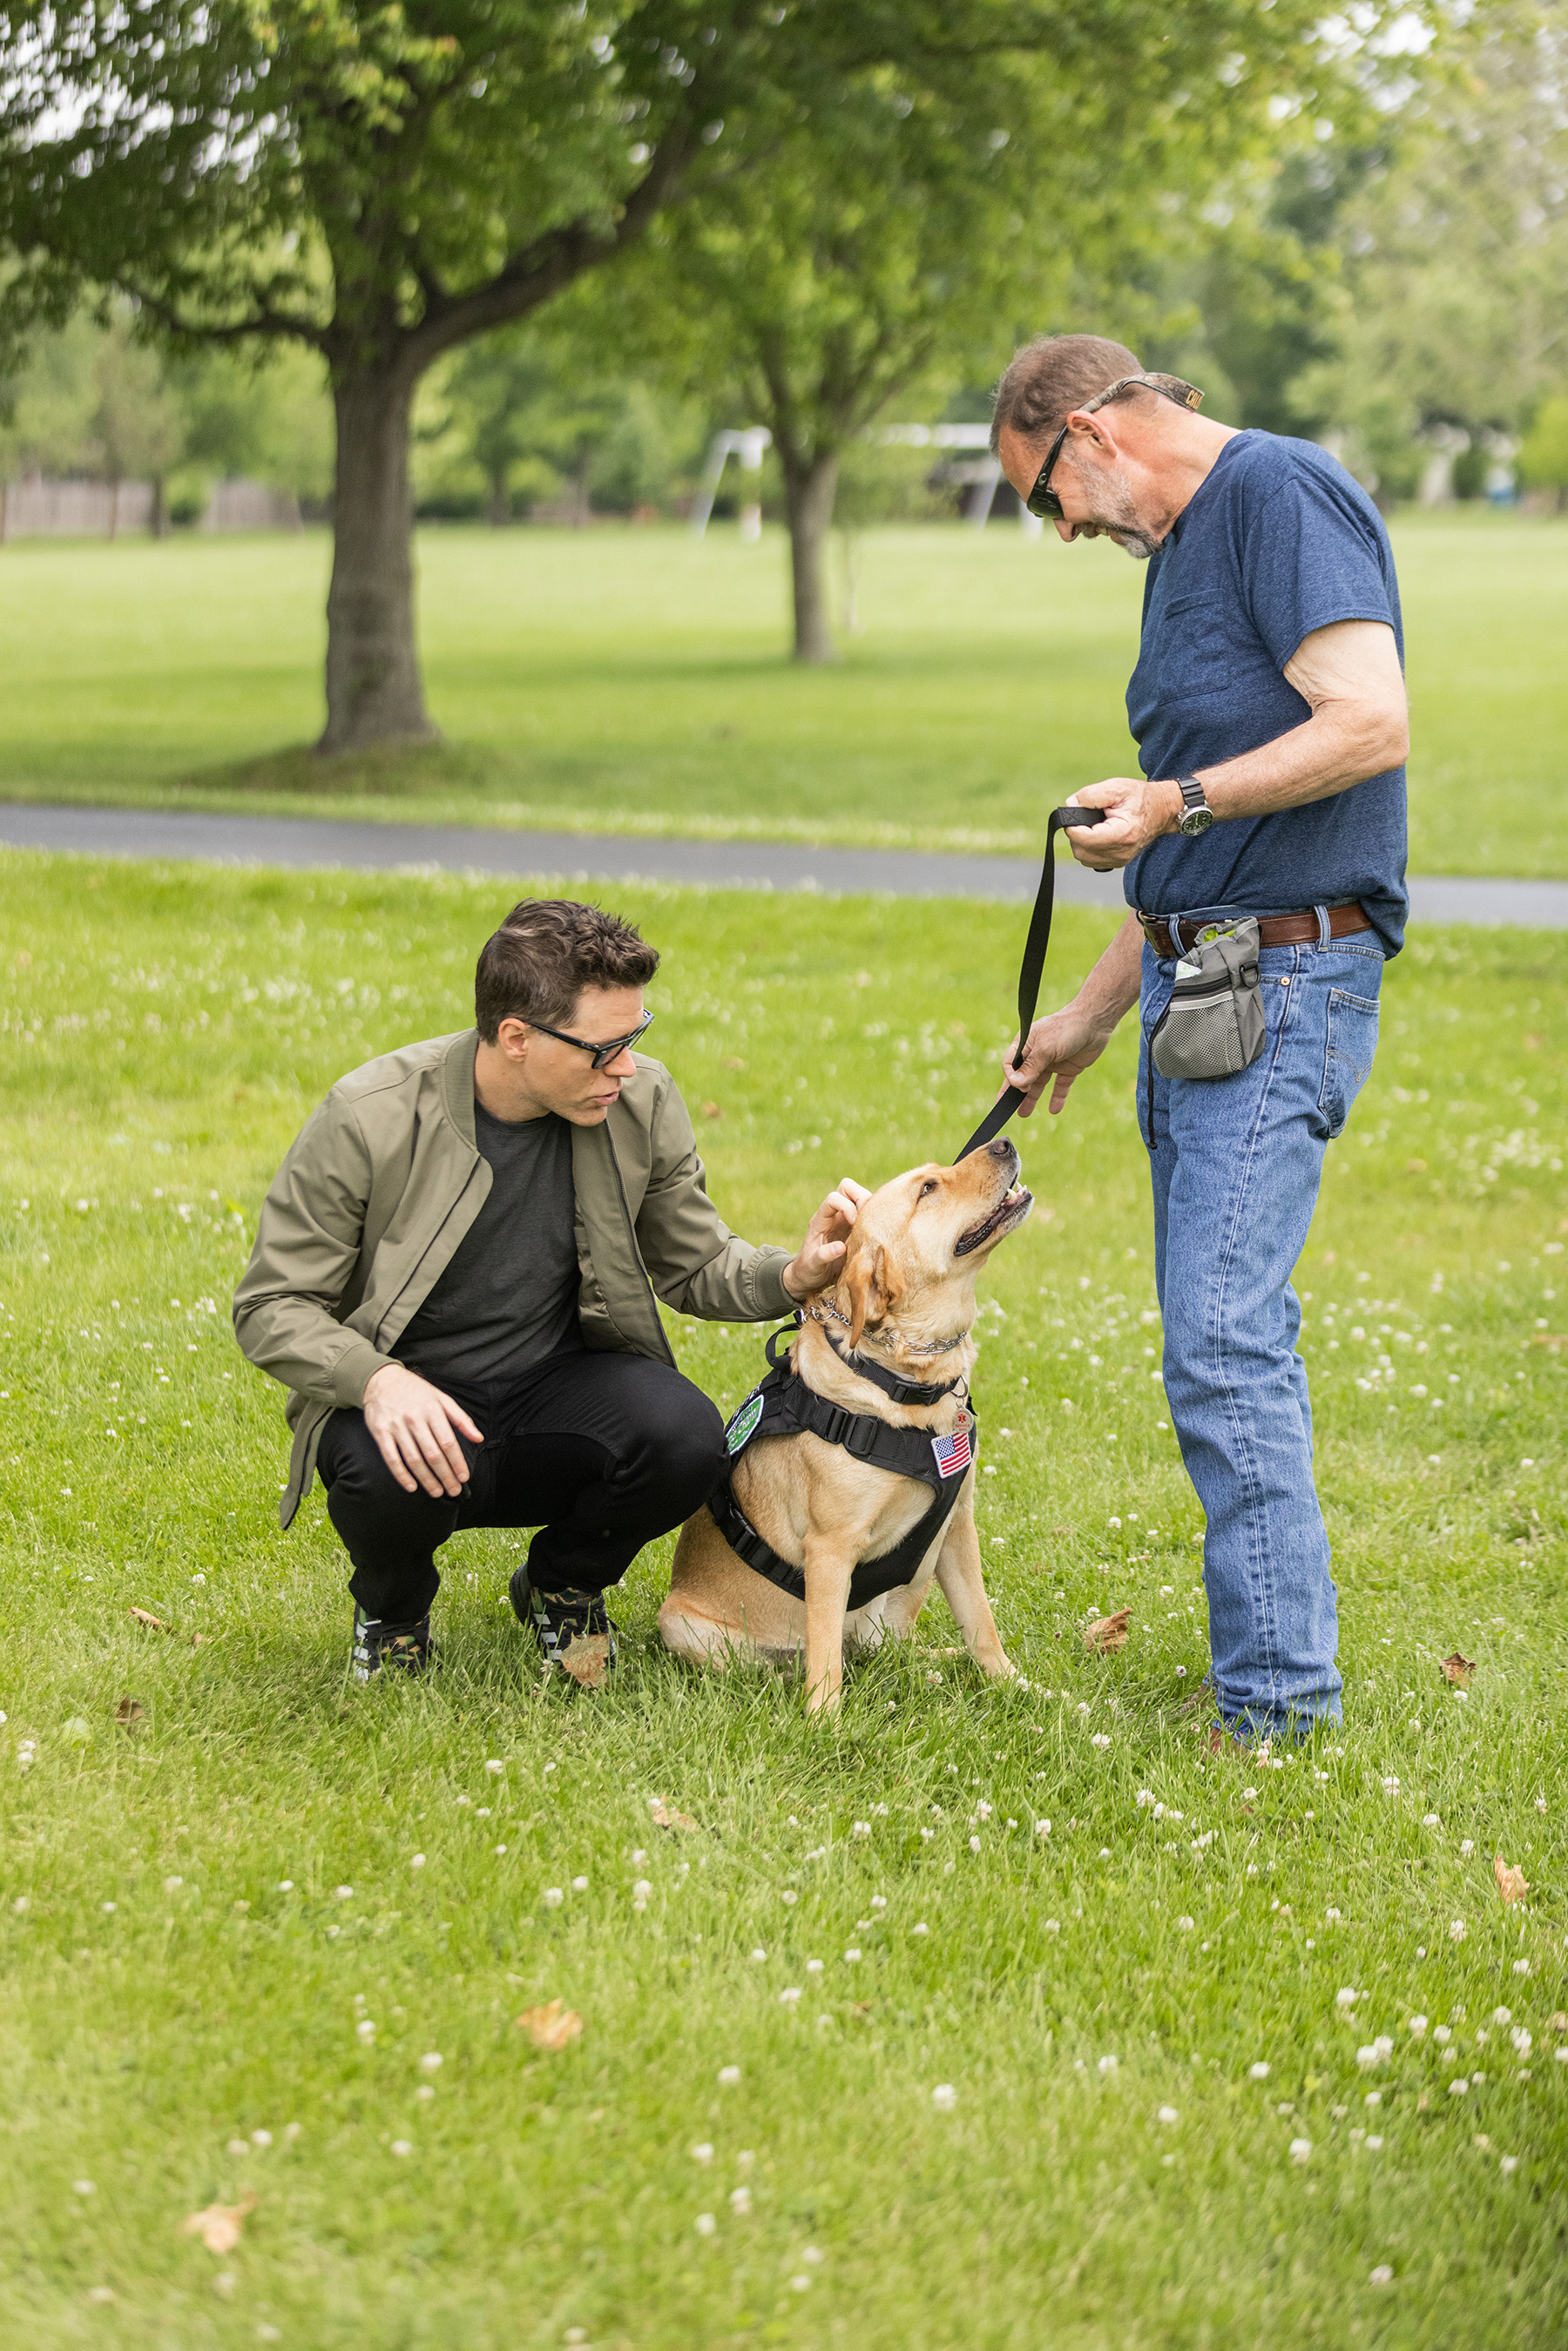 Dog Chow partner and TV/radio personality Bobby Bones with veteran Shannon and his service dog Pepper participate in the fourth annual Dog Chow Service Dog Salute campaign